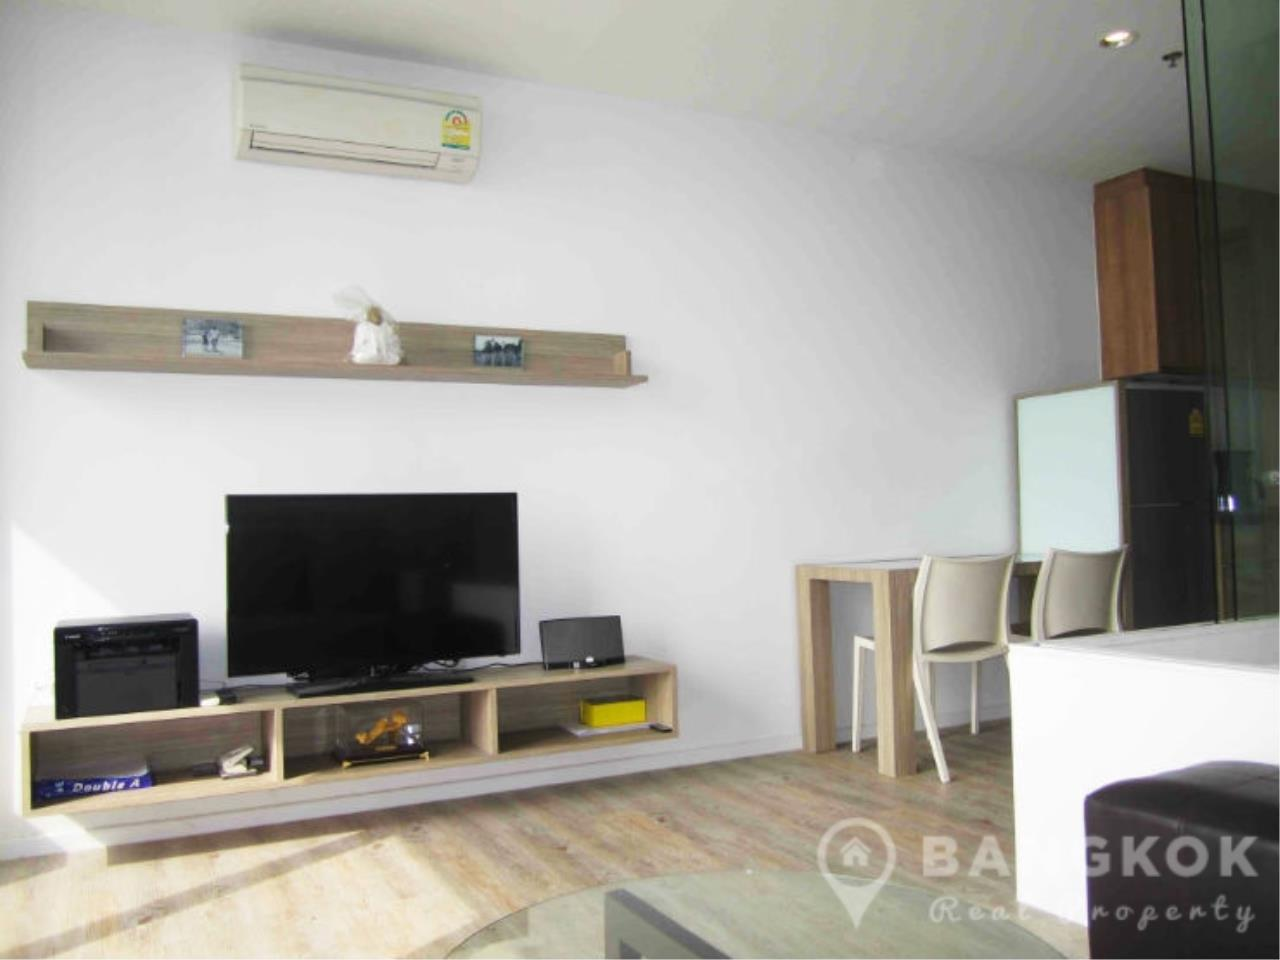 Bangkok Real Property Agency's Issara Ladprao | Stylish High Floor Studio with Stunning Views 9